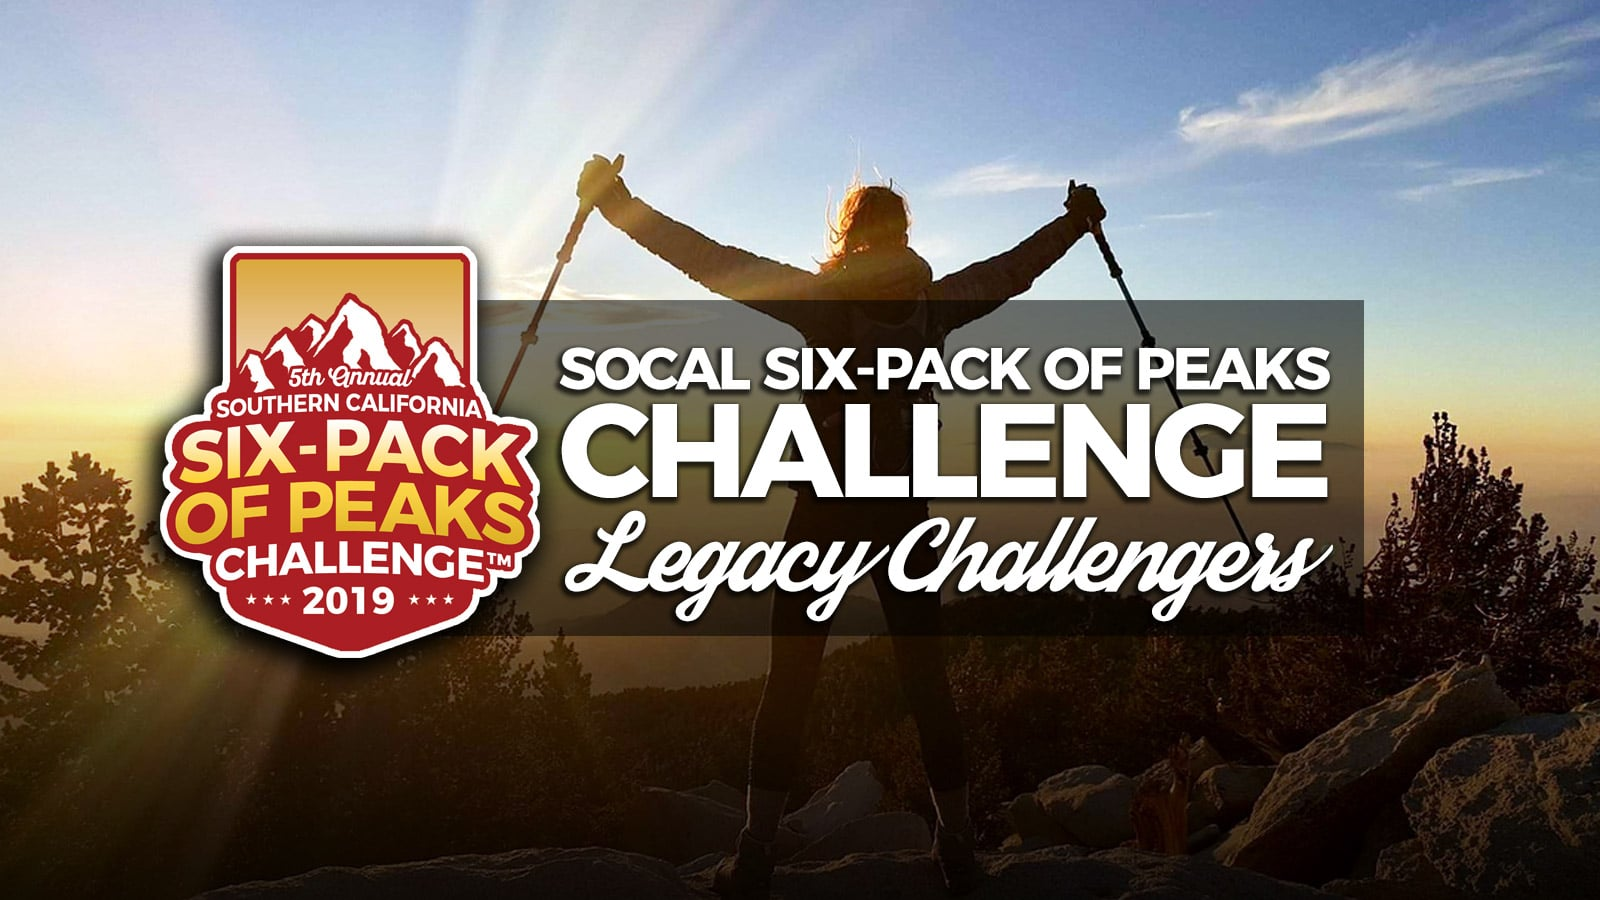 Introducing our Legacy Challengers